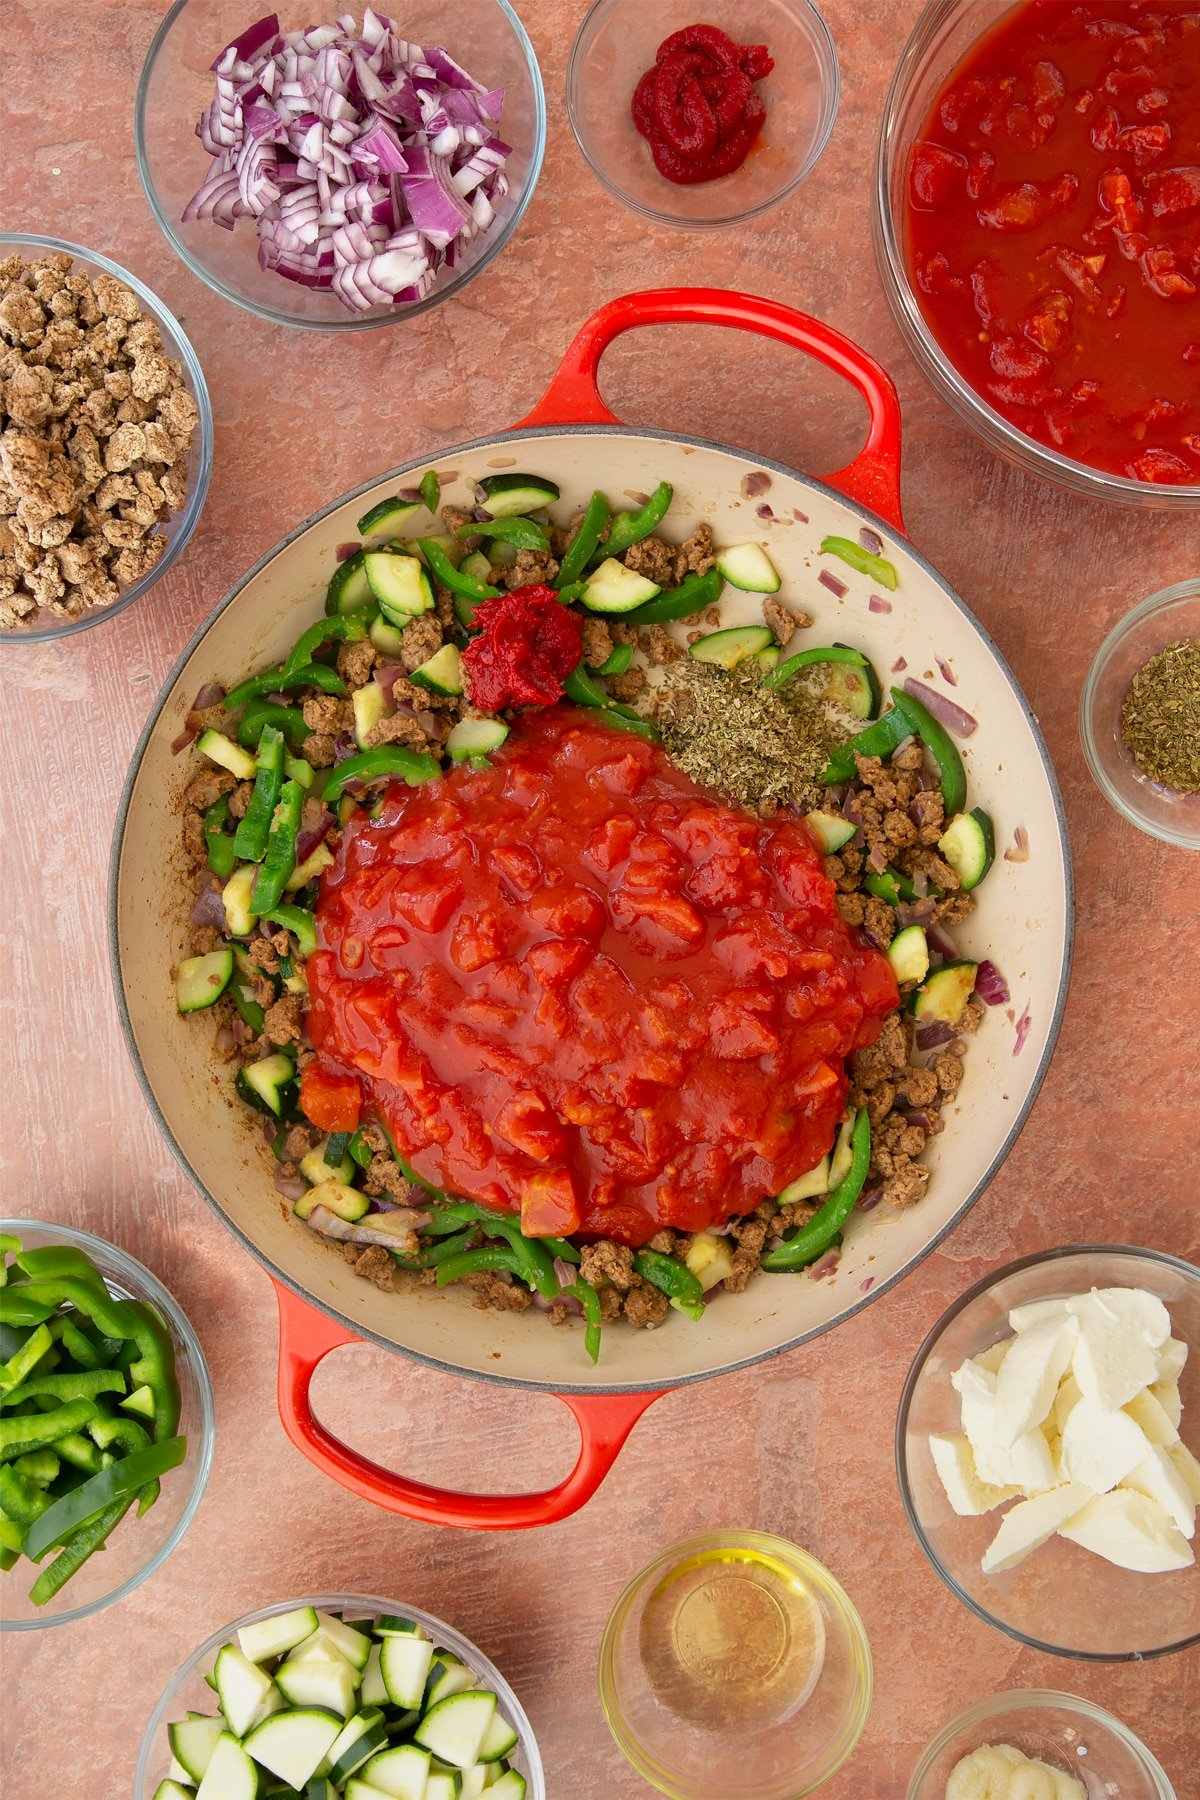 A casserole dish containing fried red onion, garlic, sliced peppers, courgettes and mince. Chopped tomatoes, tomato puree and dried oregano is added. Ingredients to make bolognese al forno surround the dish.